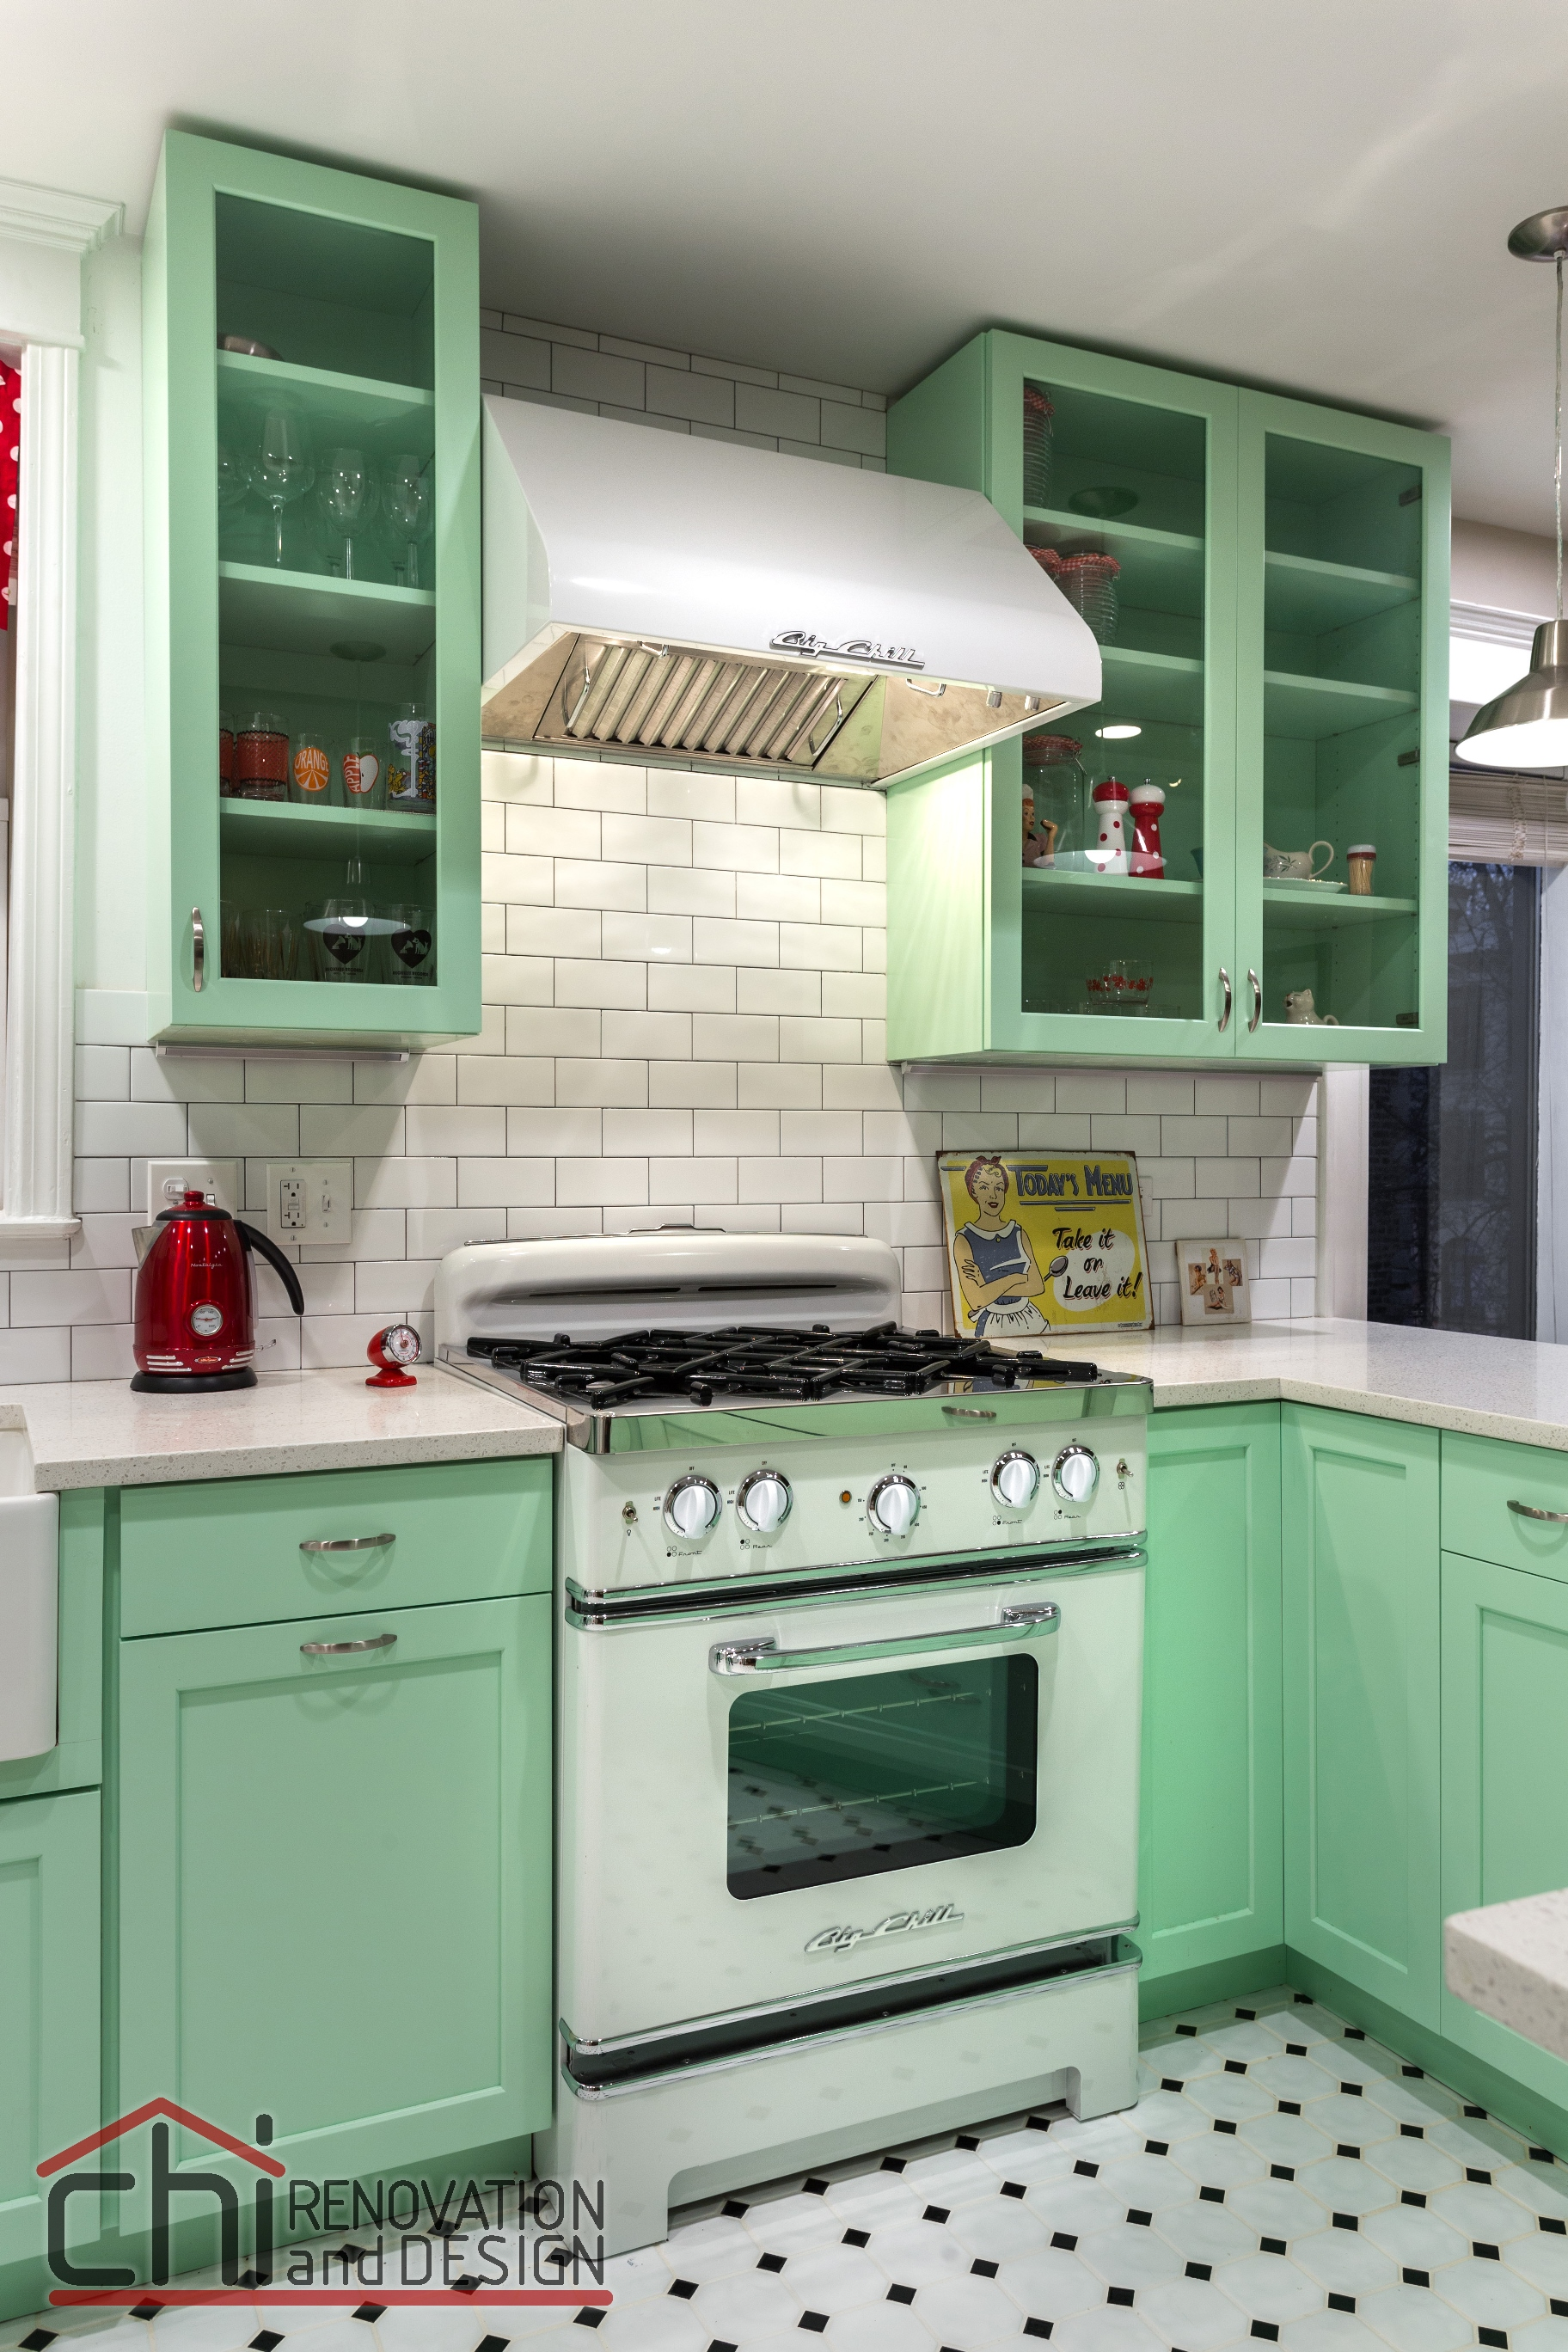 25 pastel kitchens that channel the 1950s. Black Bedroom Furniture Sets. Home Design Ideas